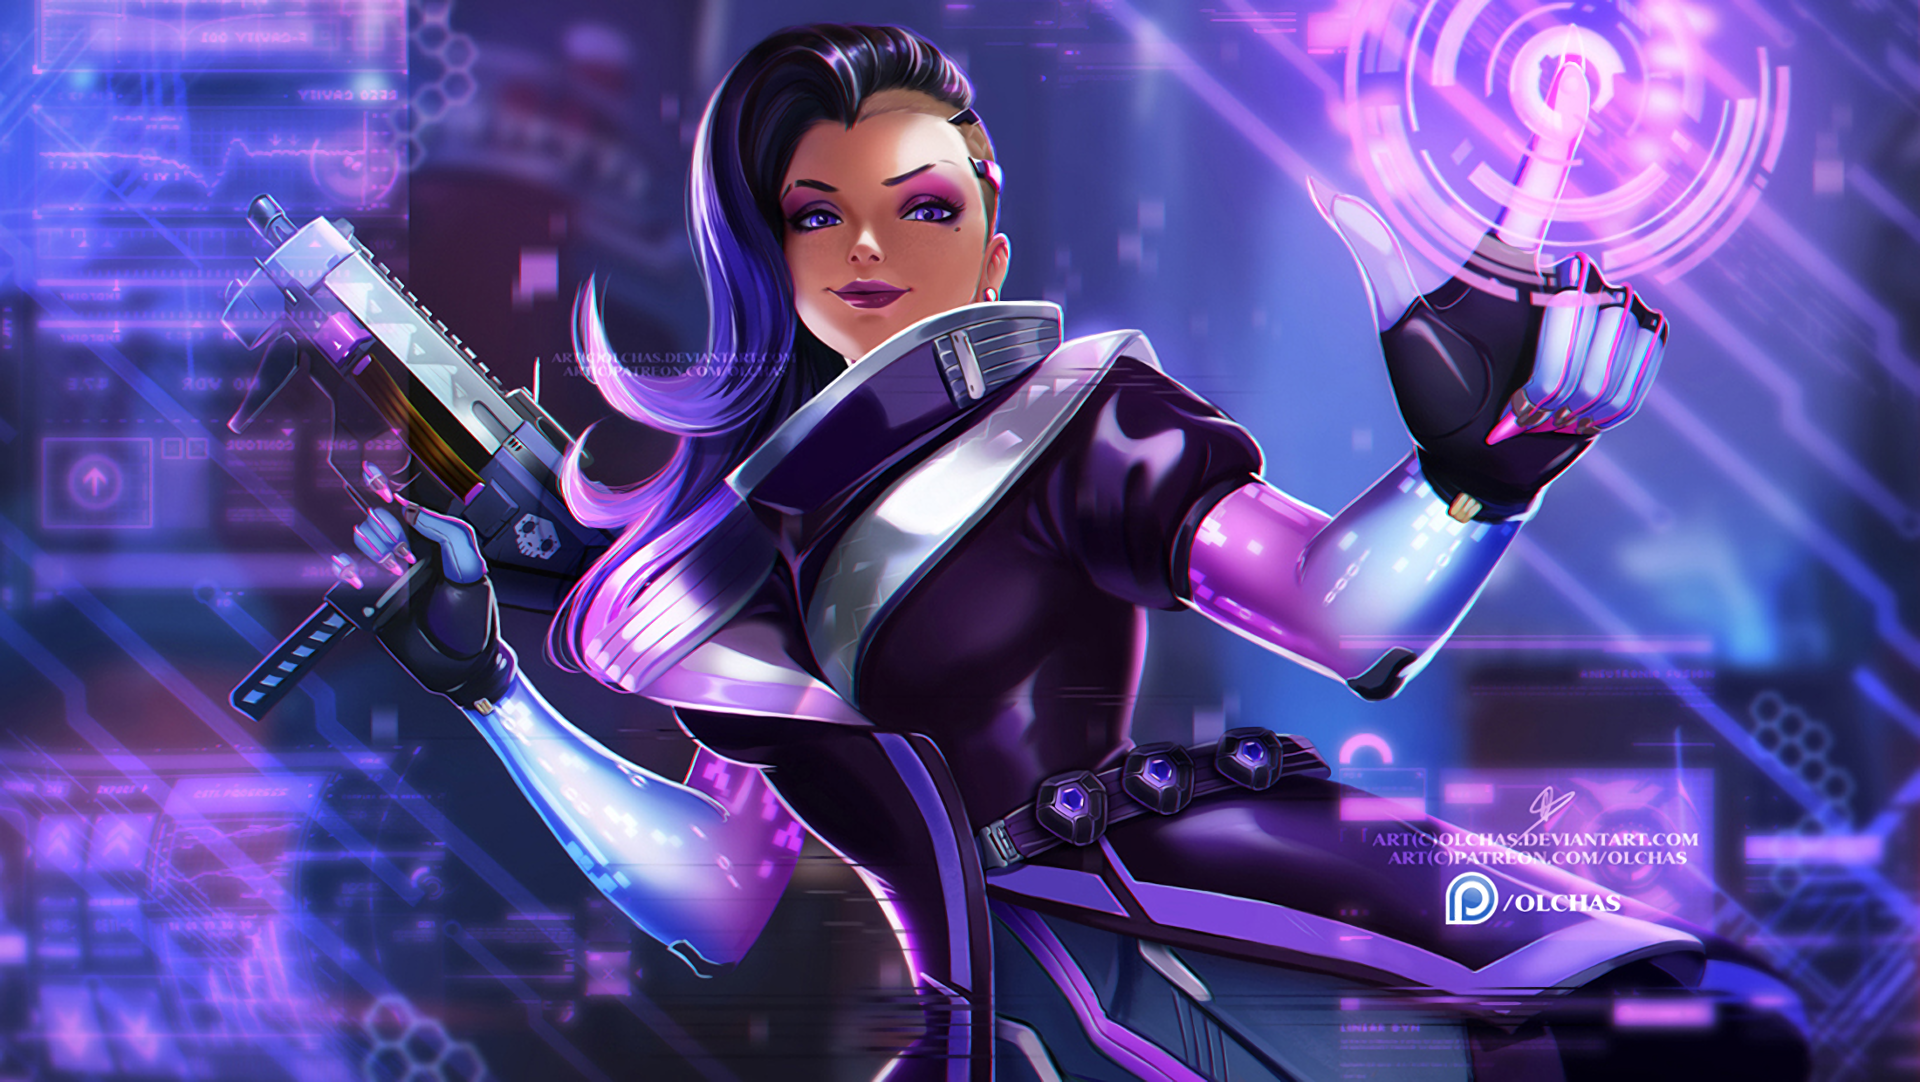 Overwatch full hd wallpaper and background 1920x1280 - Hd Wallpaper Background Id 765760